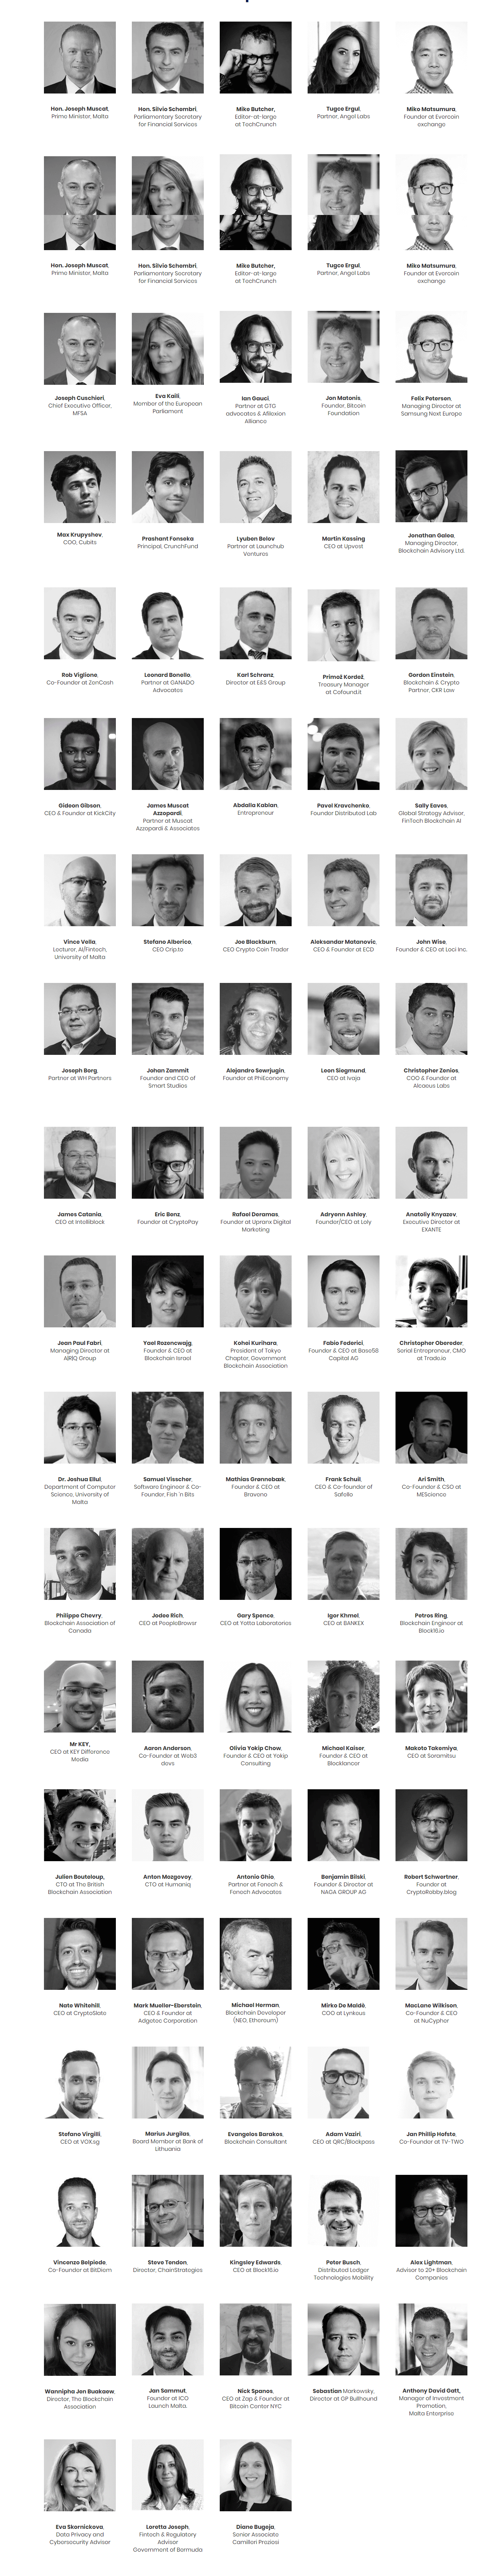 Malta BlockChain Summit Speakers 2018